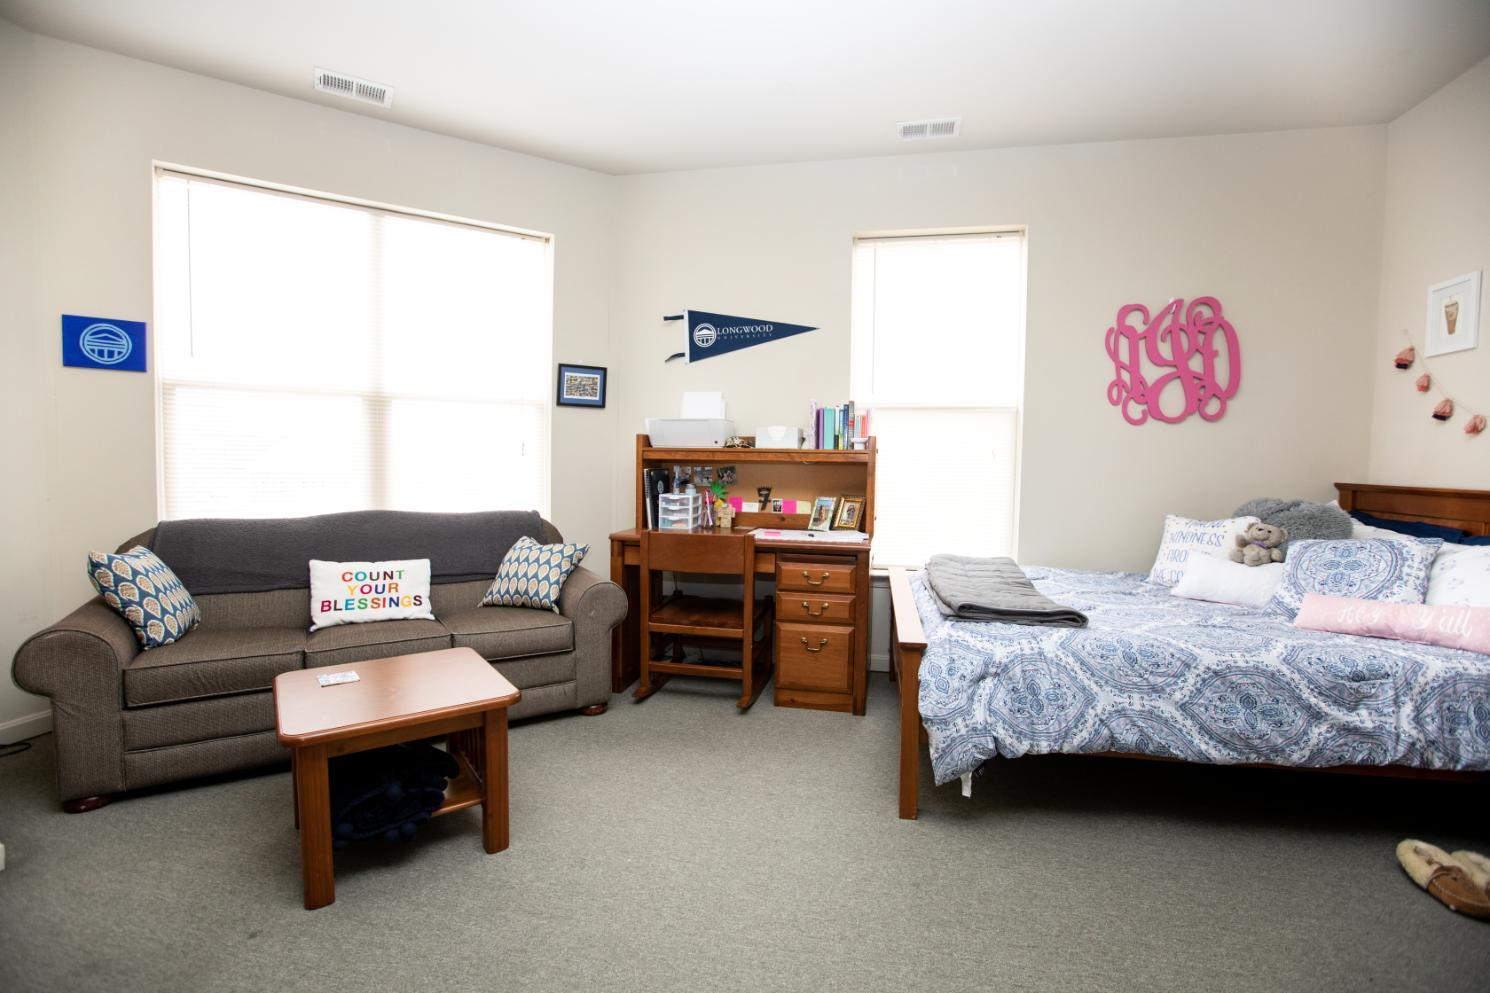 Longwood Landings Studio Apartment; View of bed and couch and windows from the kitchen